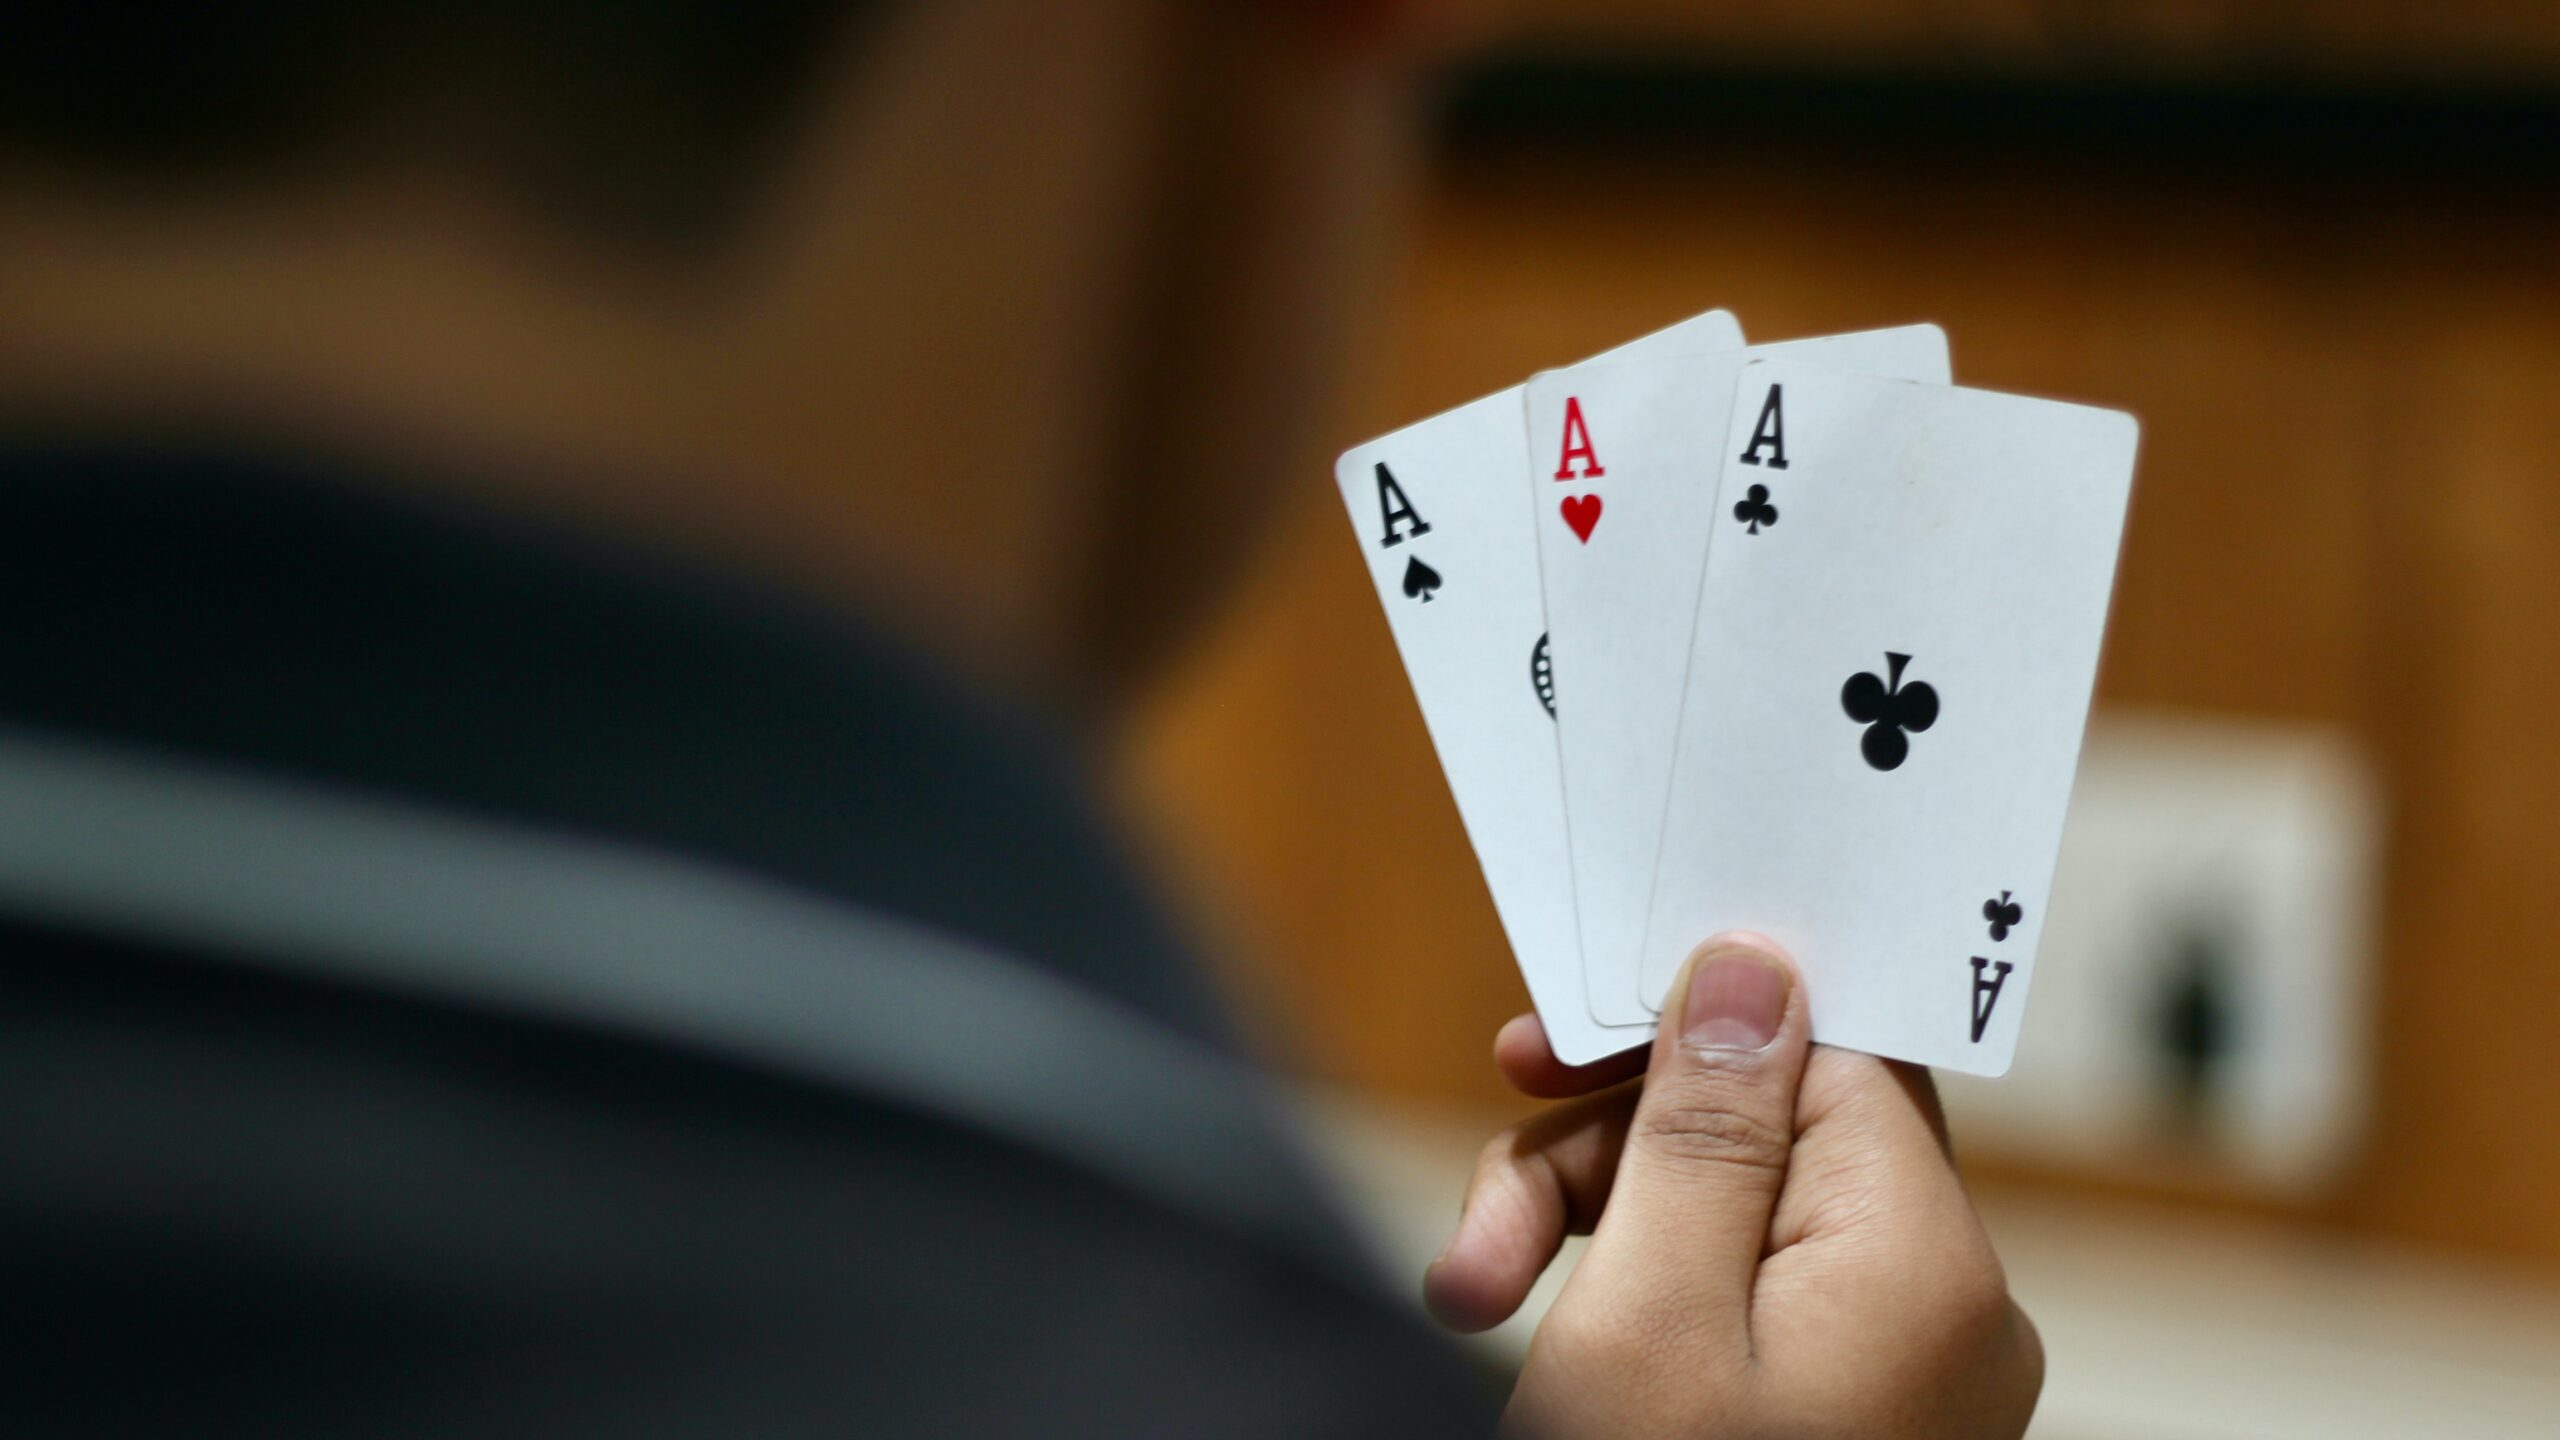 Three cards that are aces